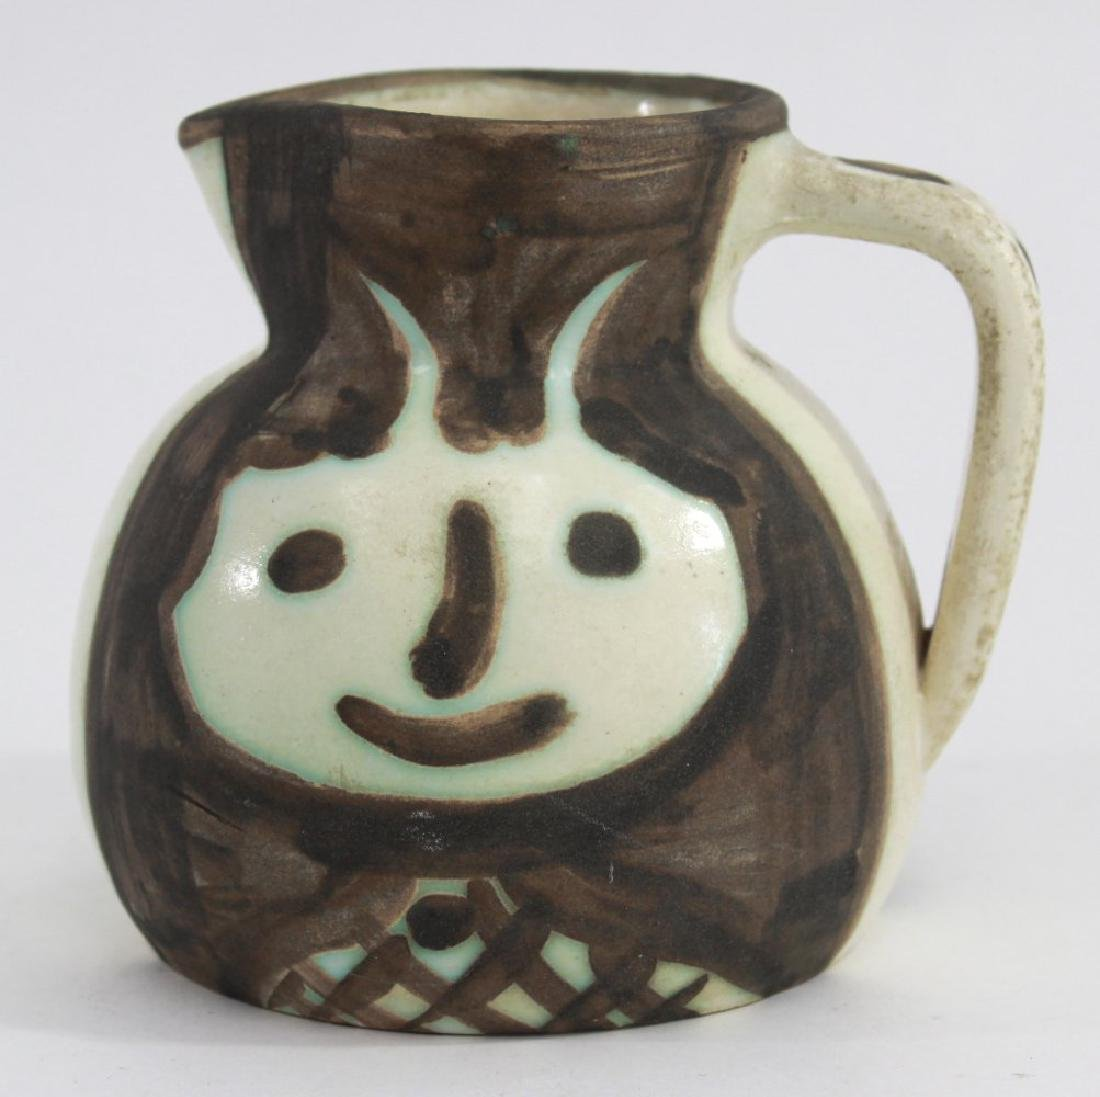 Pablo Picasso Glazed Pitcher with Faces